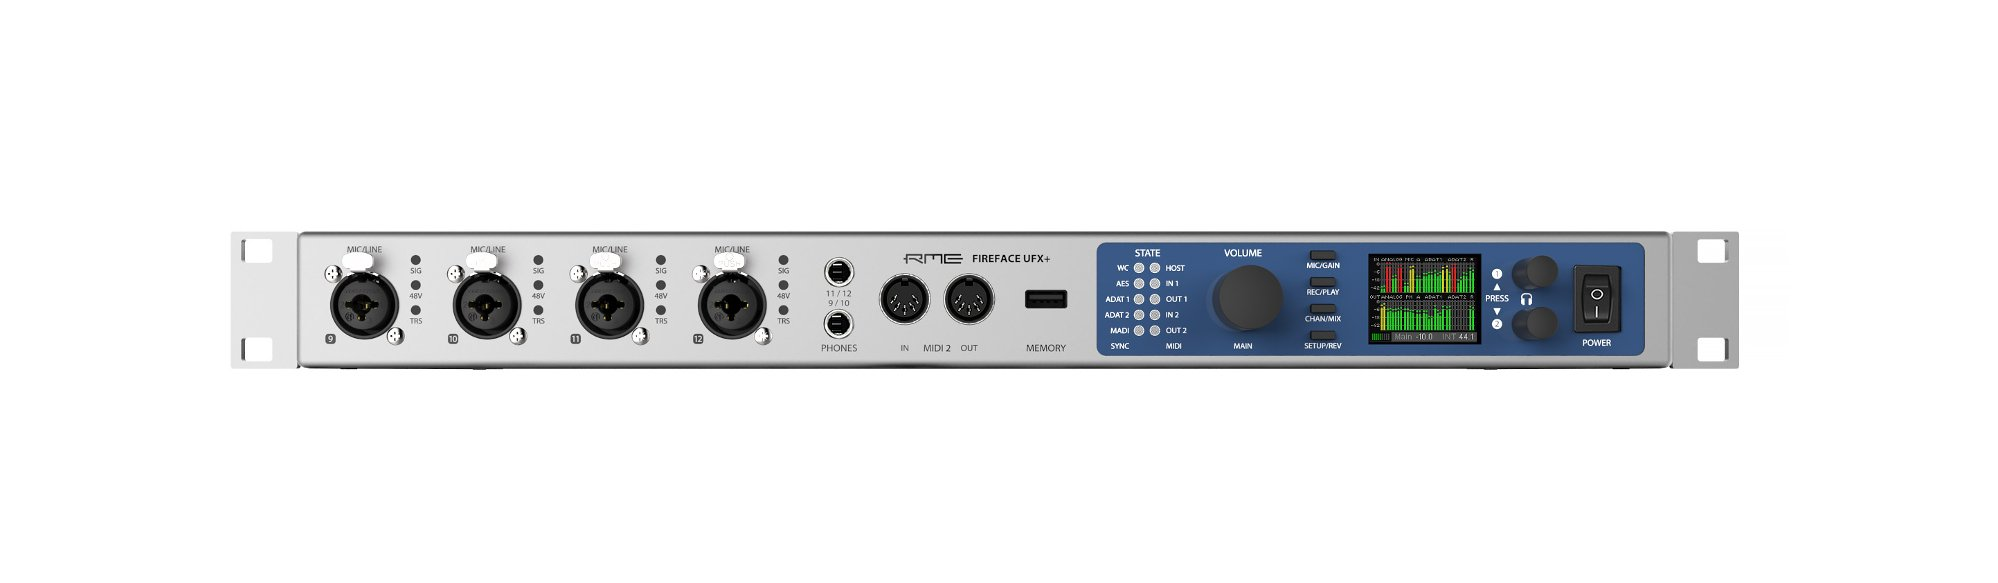 RME Fireface UFX+ Firewire Audio 188 Channel USB Thunderbolt Interface, 1RU FIREFACE-UFX-PLUS